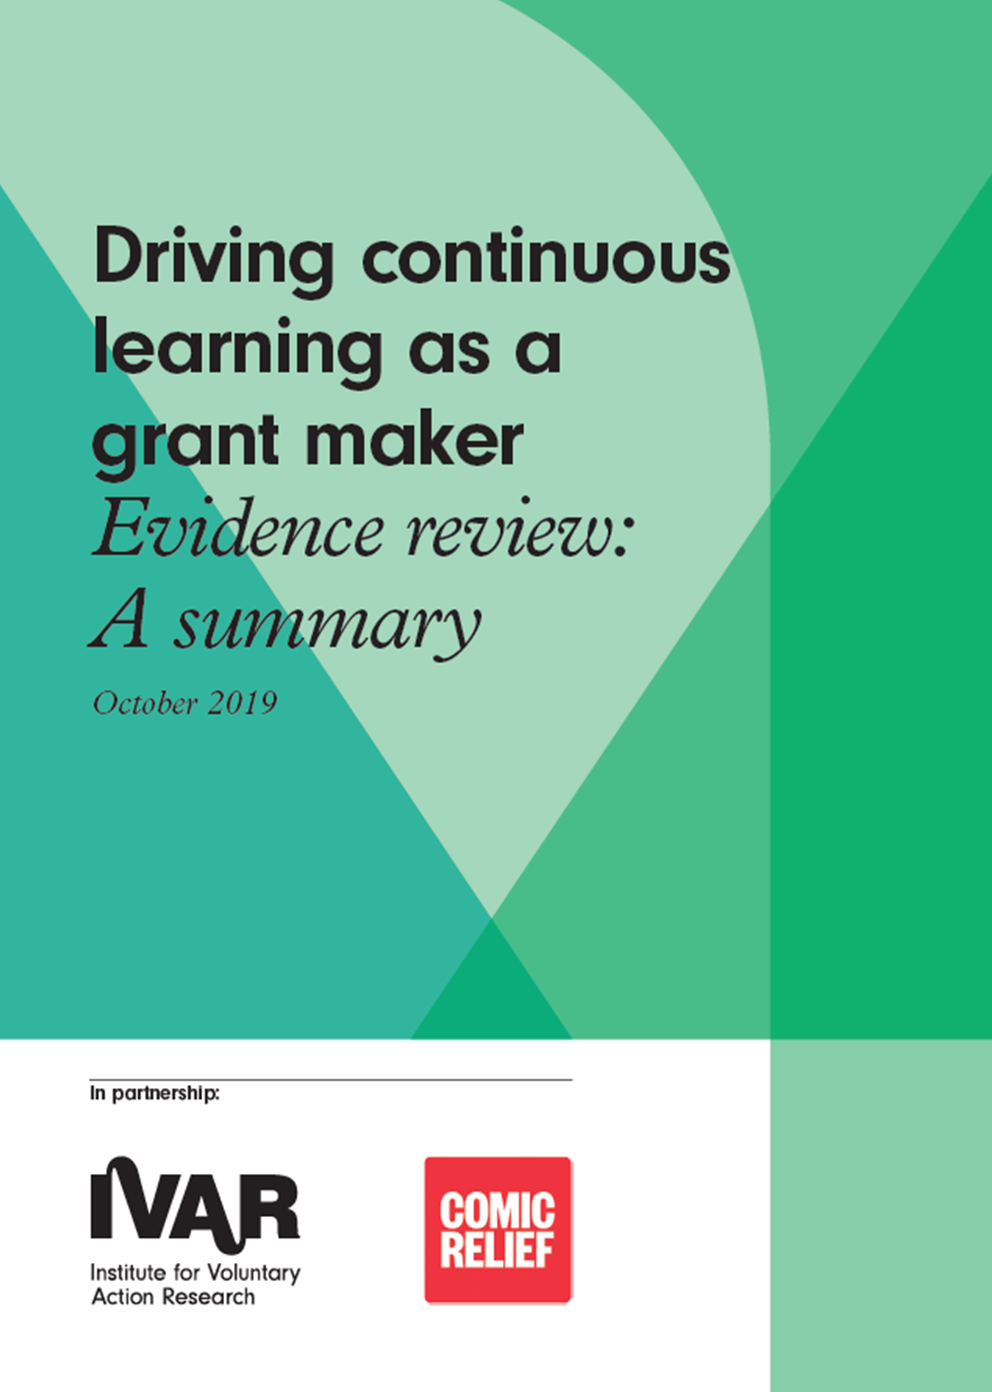 Summary: Driving continuous learning as a grant maker – Evidence review